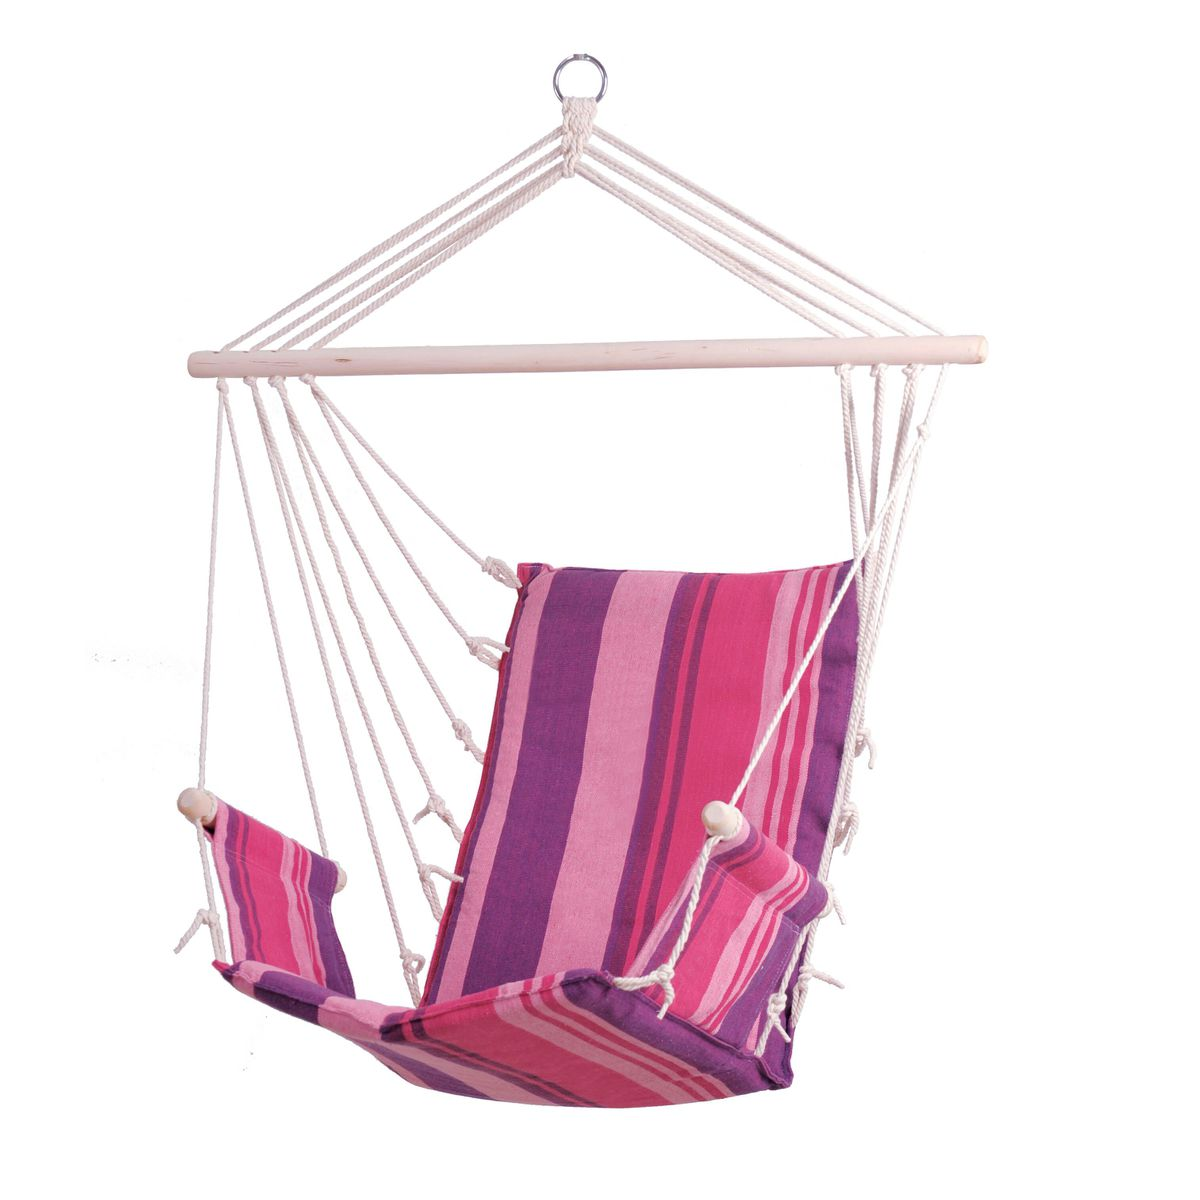 Amazonas Palau Candy Hanging Chair - Ruby's Garden Boutique